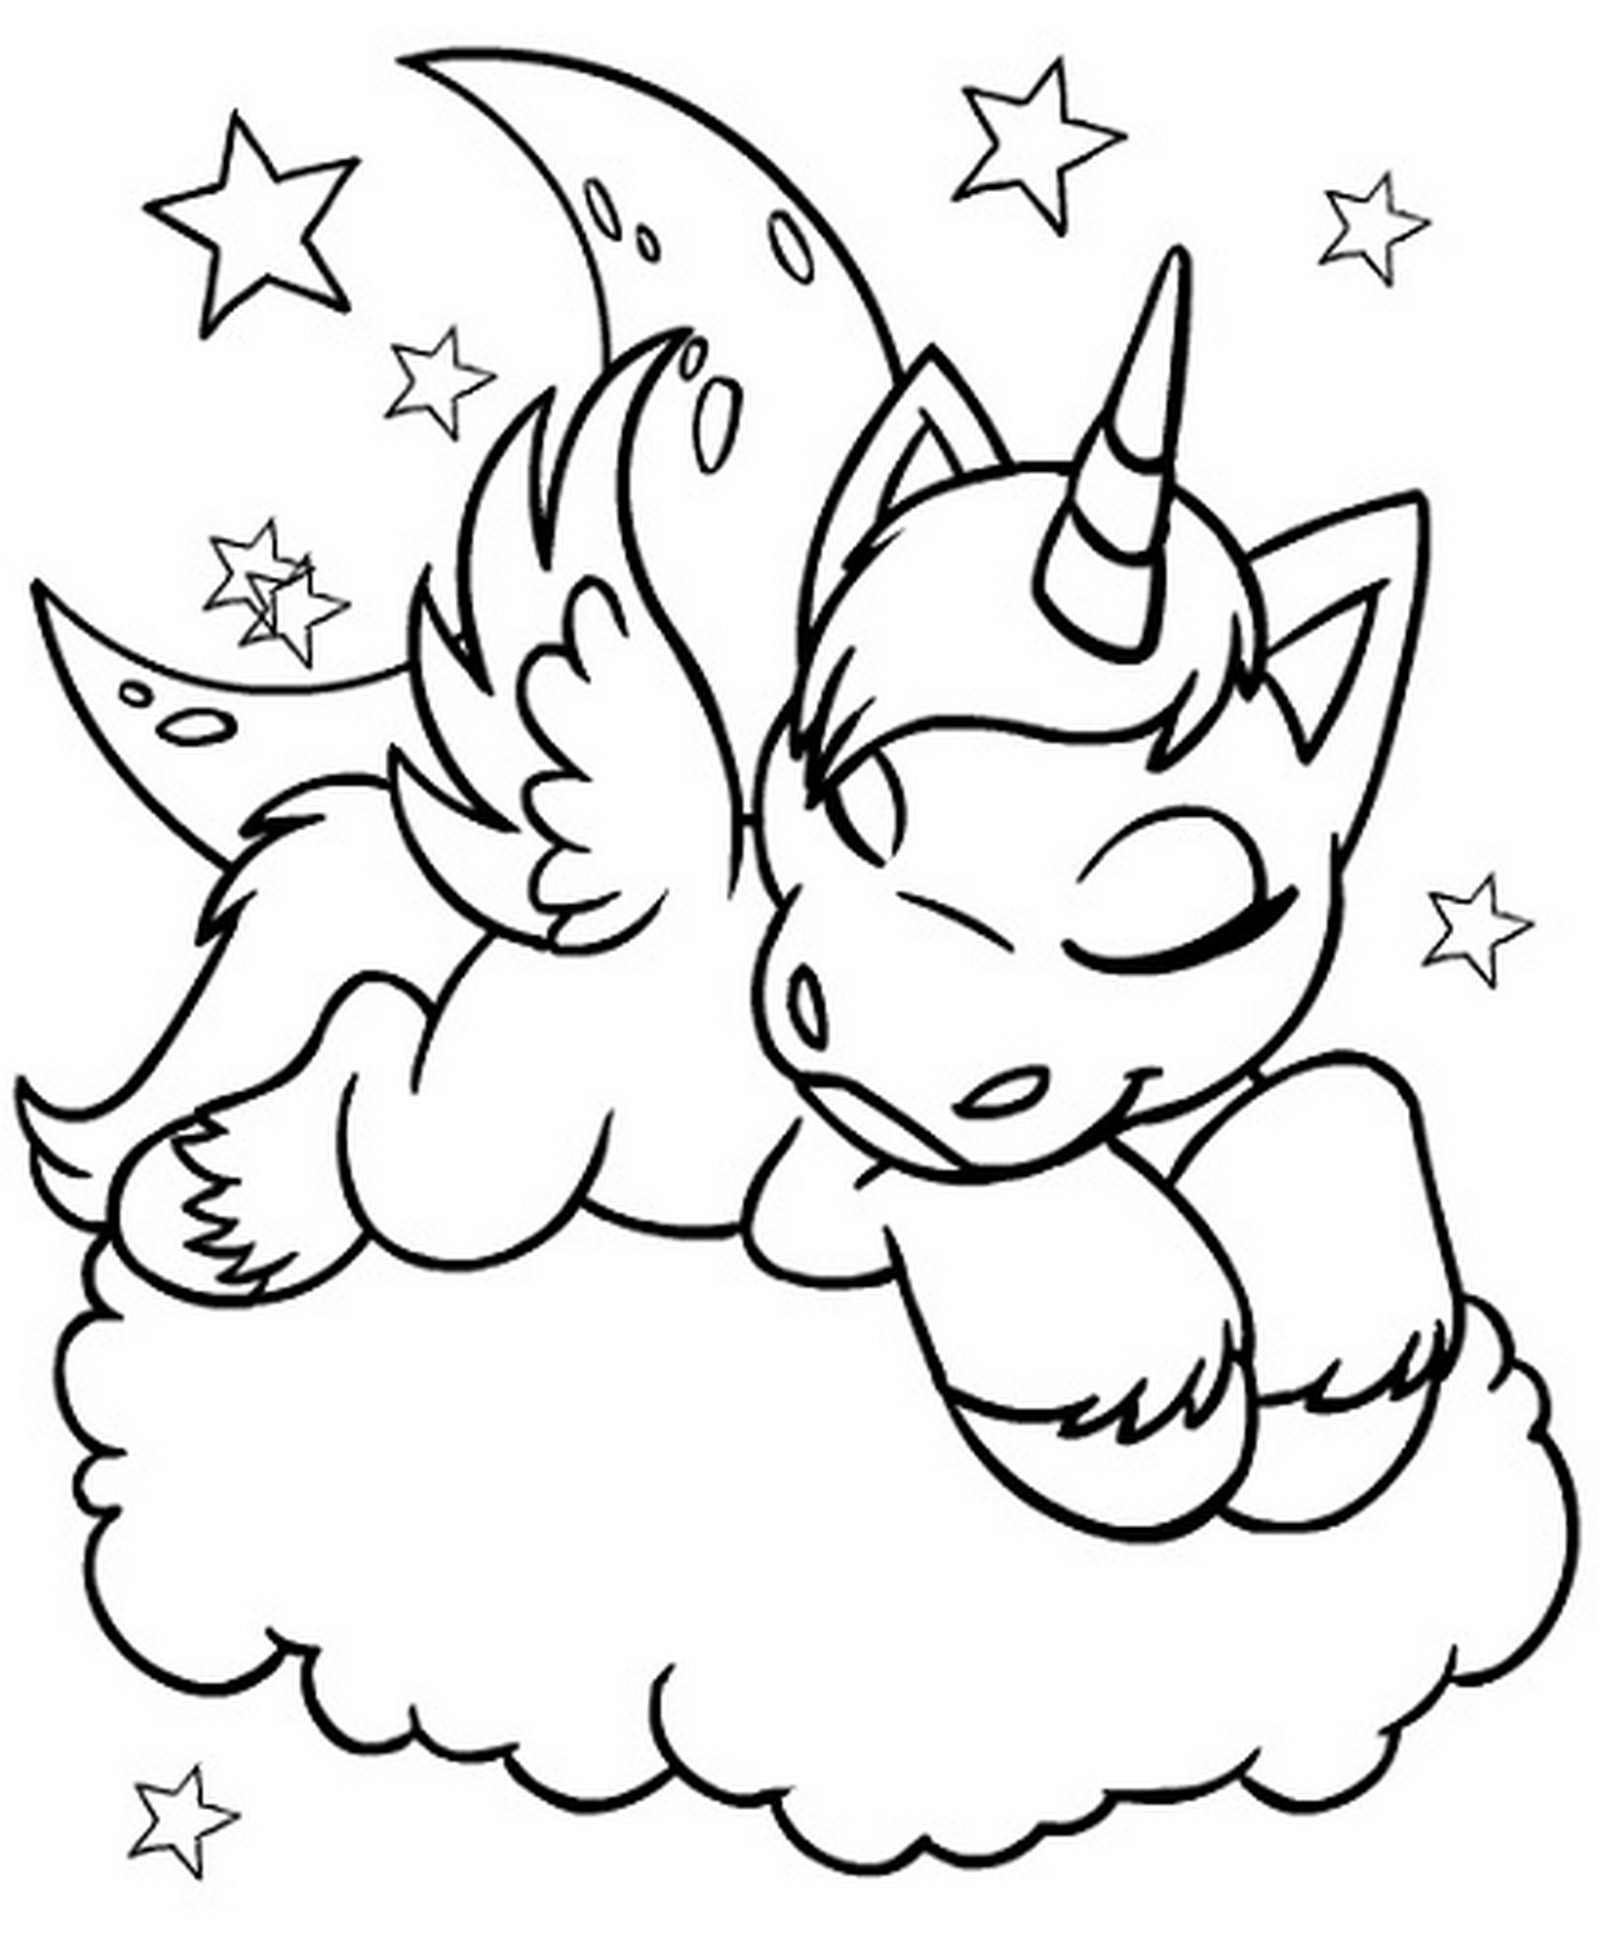 unicorn coloring videos unicorn coloring pages to download and print for free coloring videos unicorn